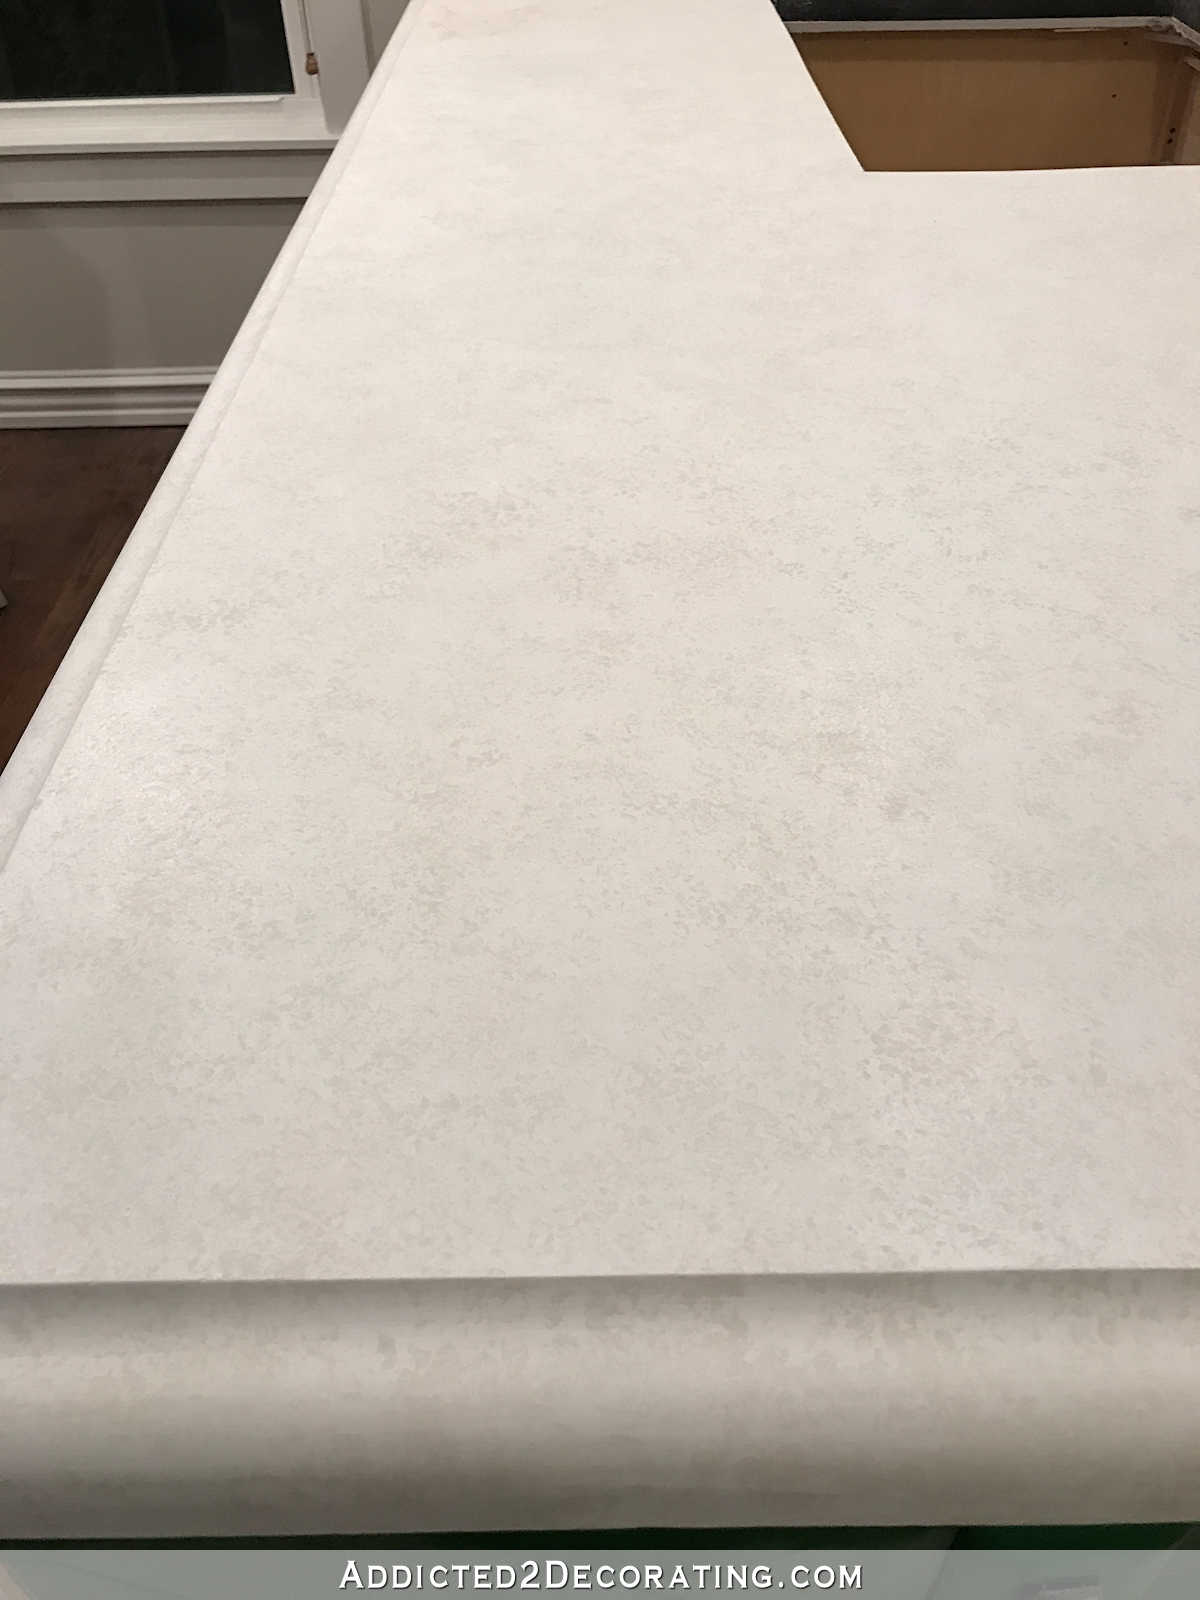 refinishing concrete countertops - 24 - third coat of sponged paint in Sherwin Williams Snowbound